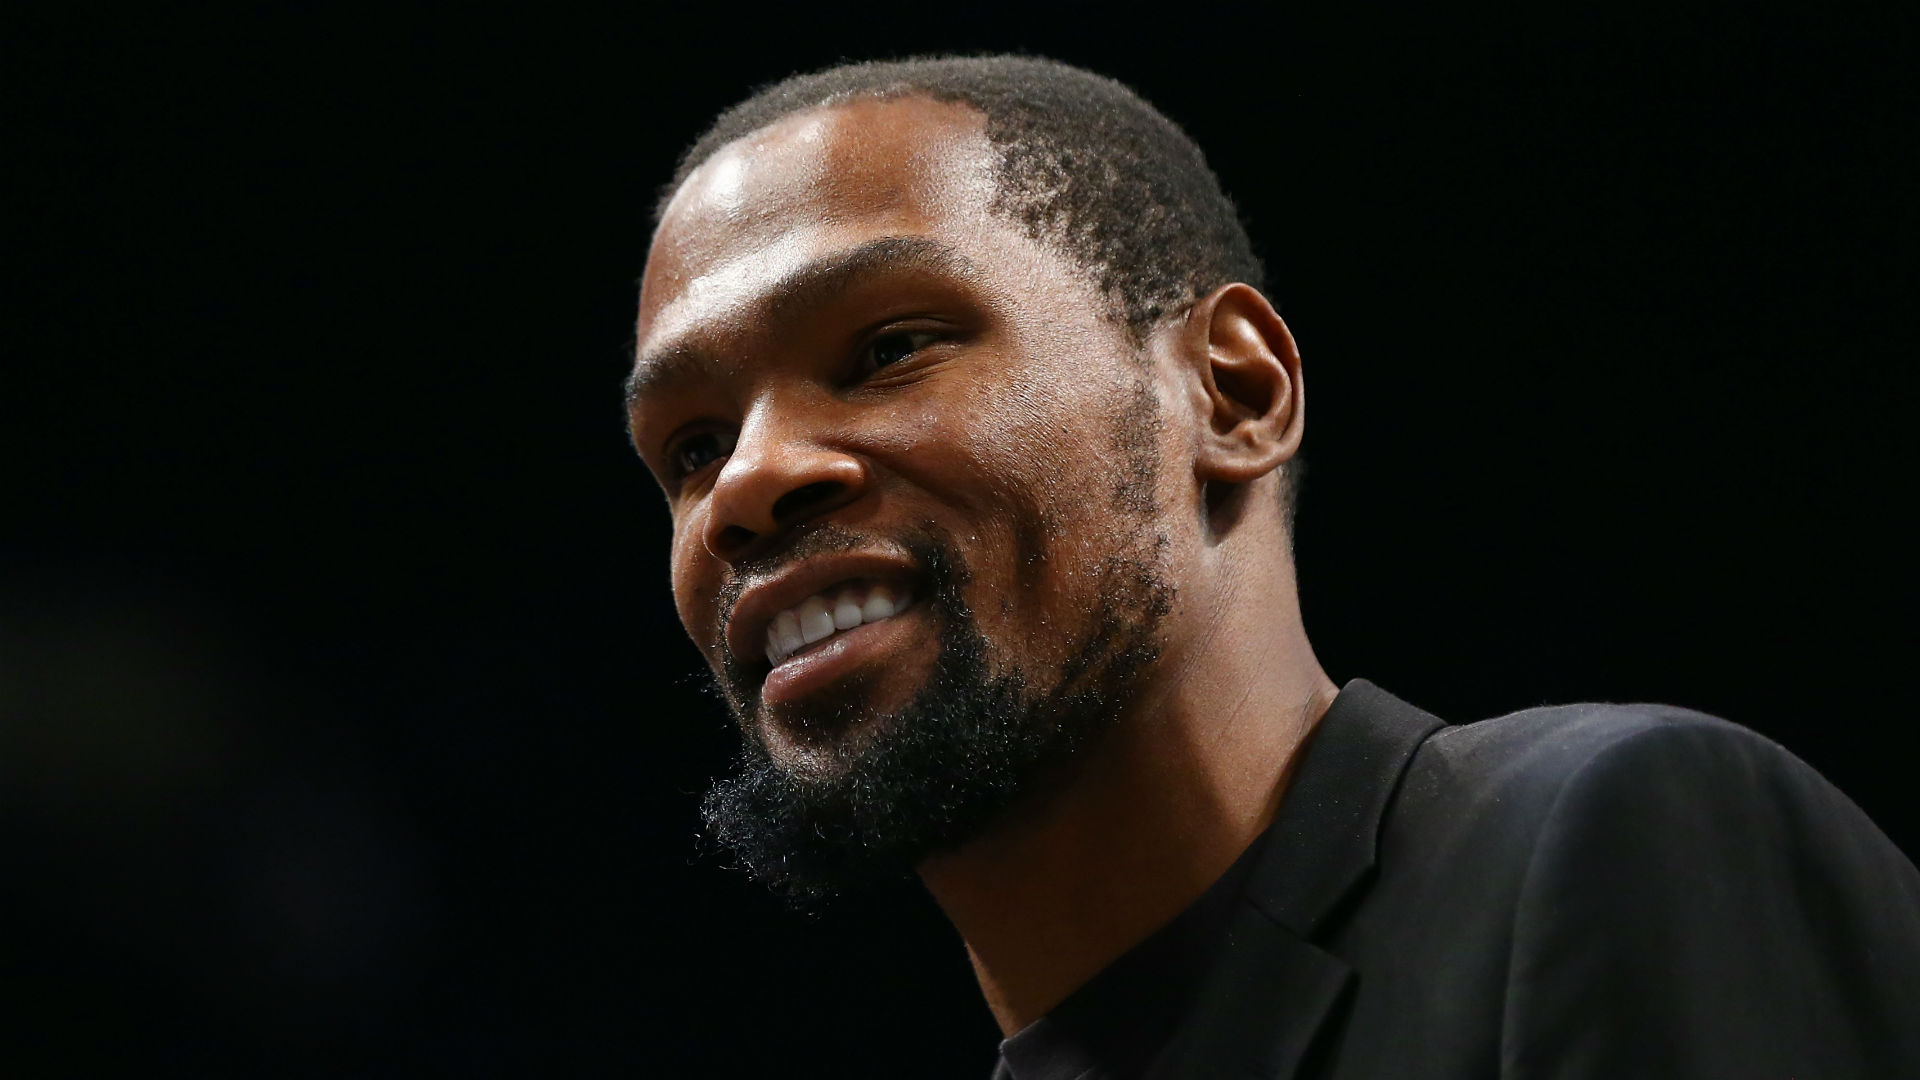 Nets' Kevin Durant relishing opportunity to be coached by Steve Nash